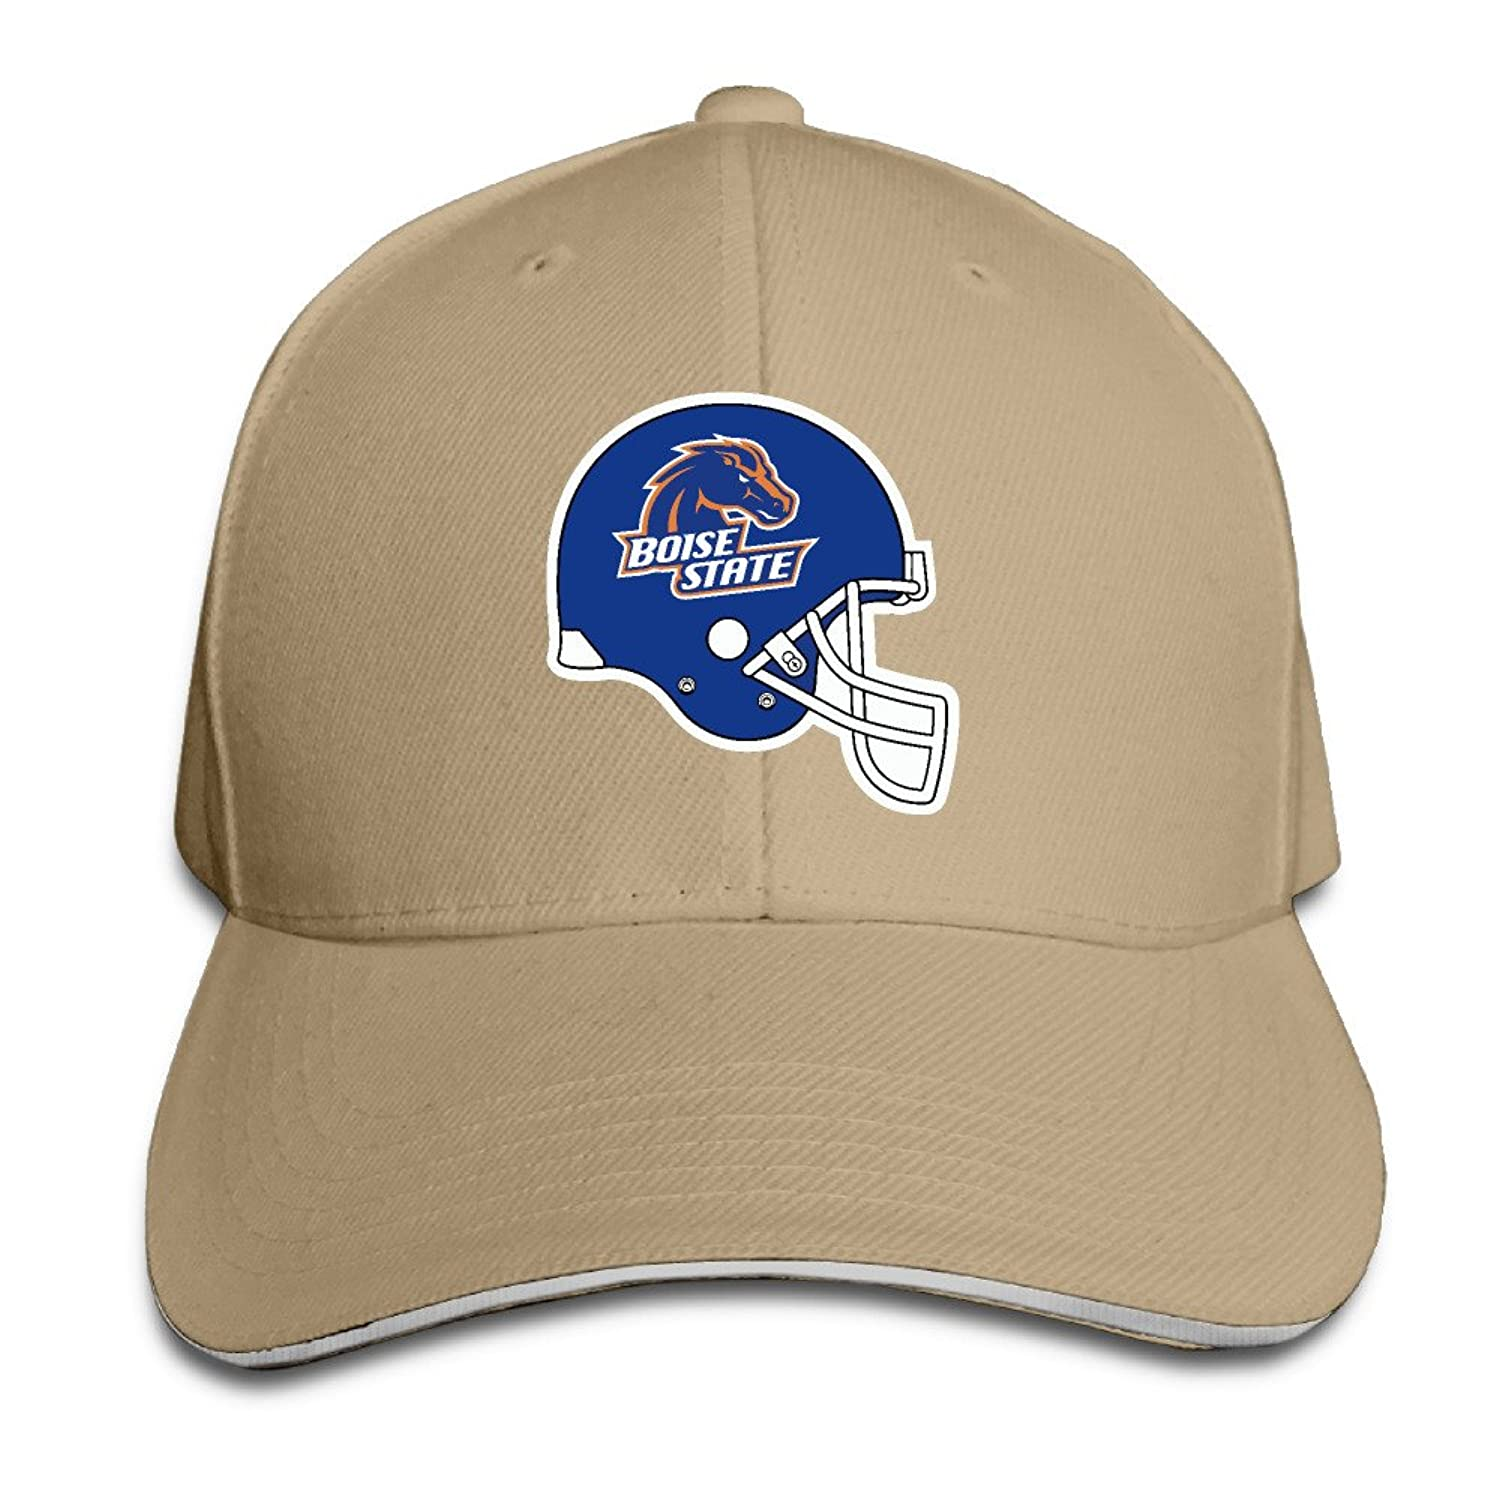 Boise State Broncos Sandwich Cap Size: Adjustable Caps.